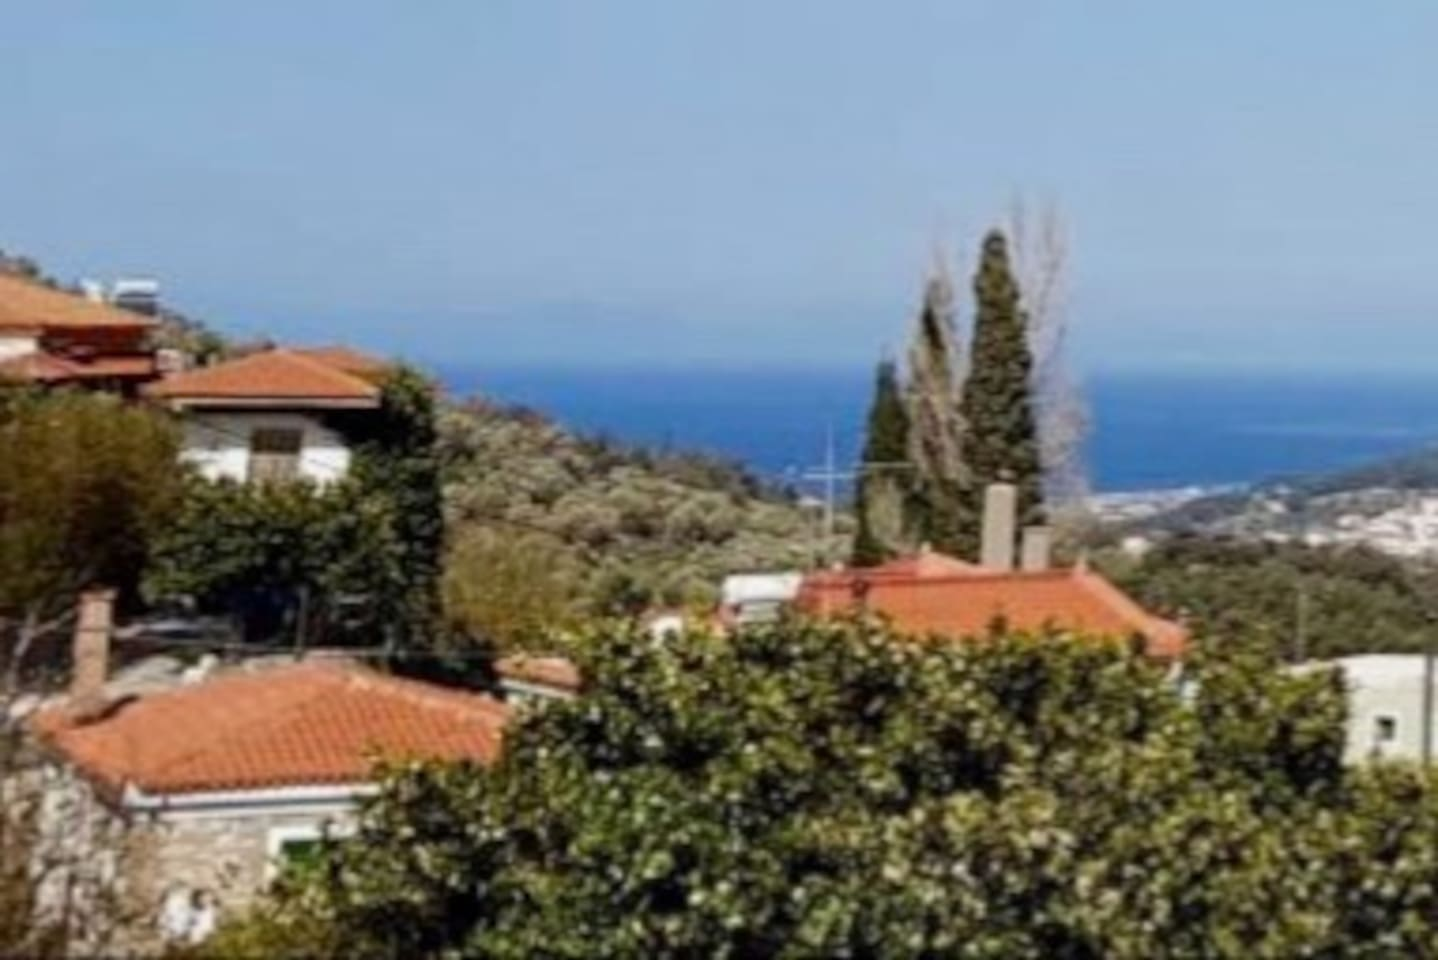 House view over the traditional village to the sea